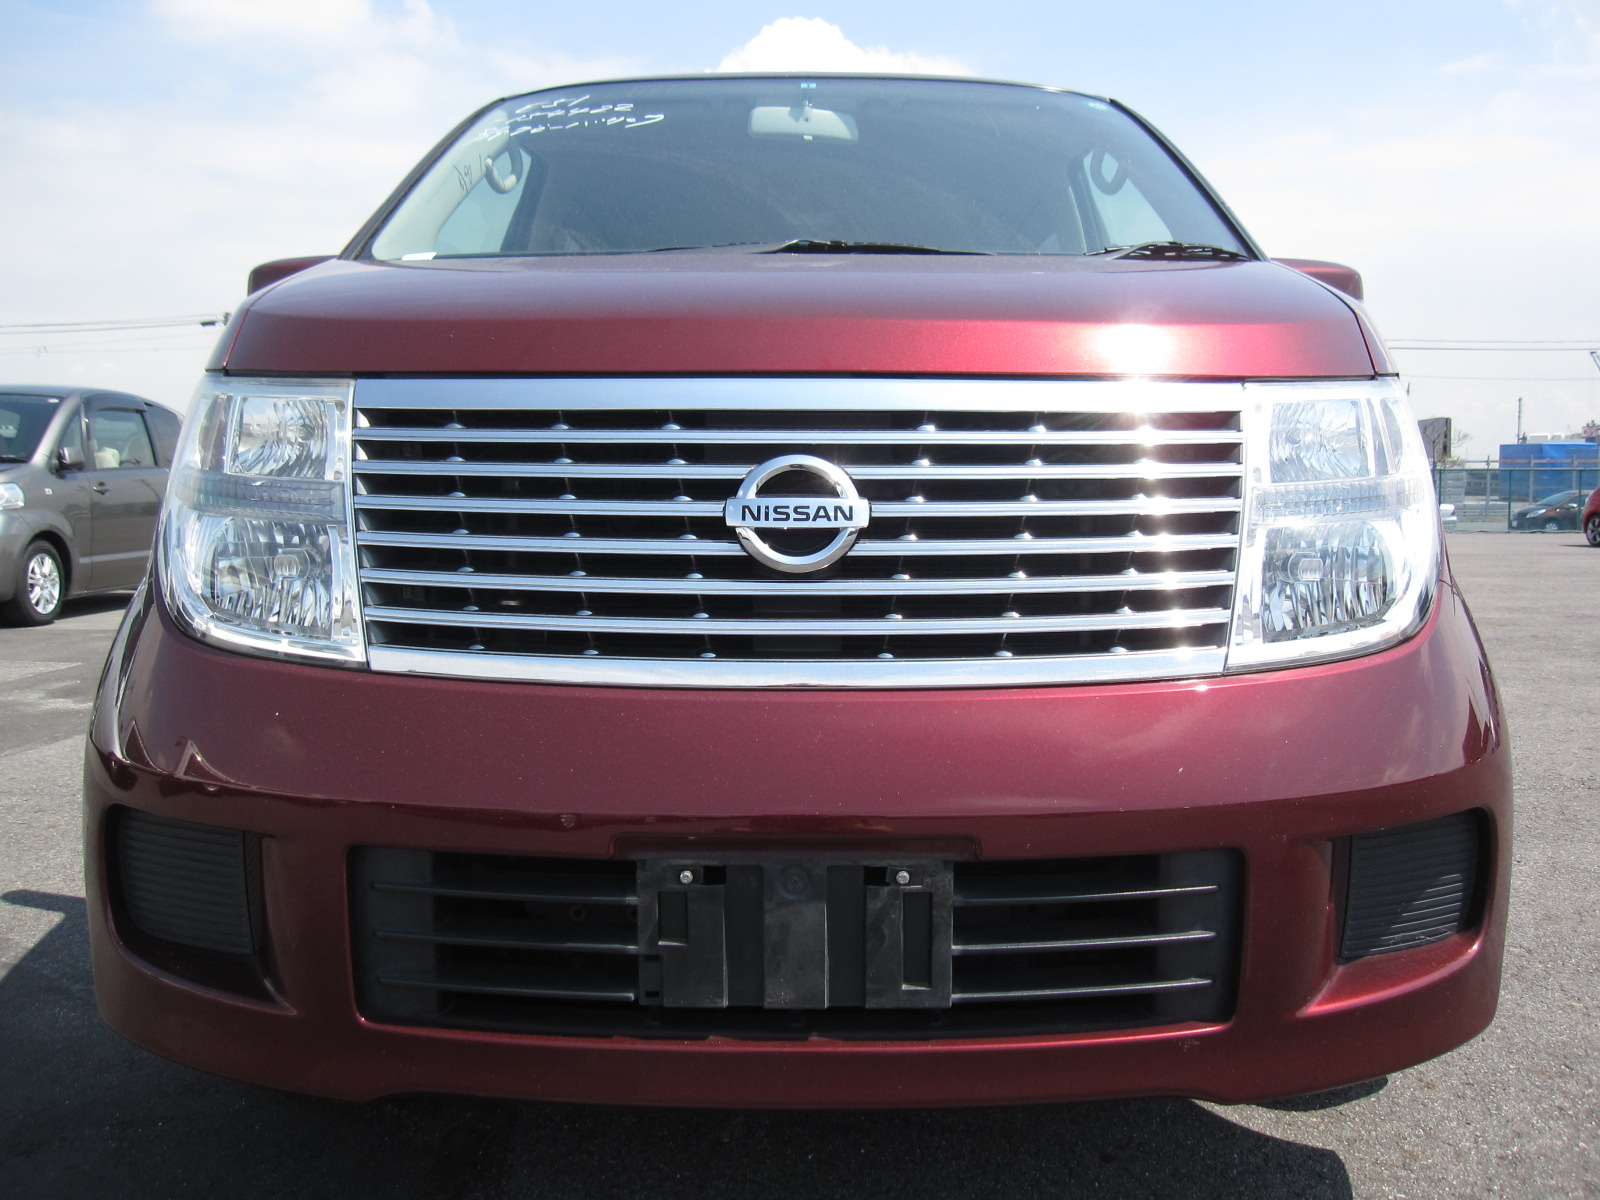 Used Car Down Payment Calculator >> NISSAN E51 ELGRAND | Toy Car Engineering